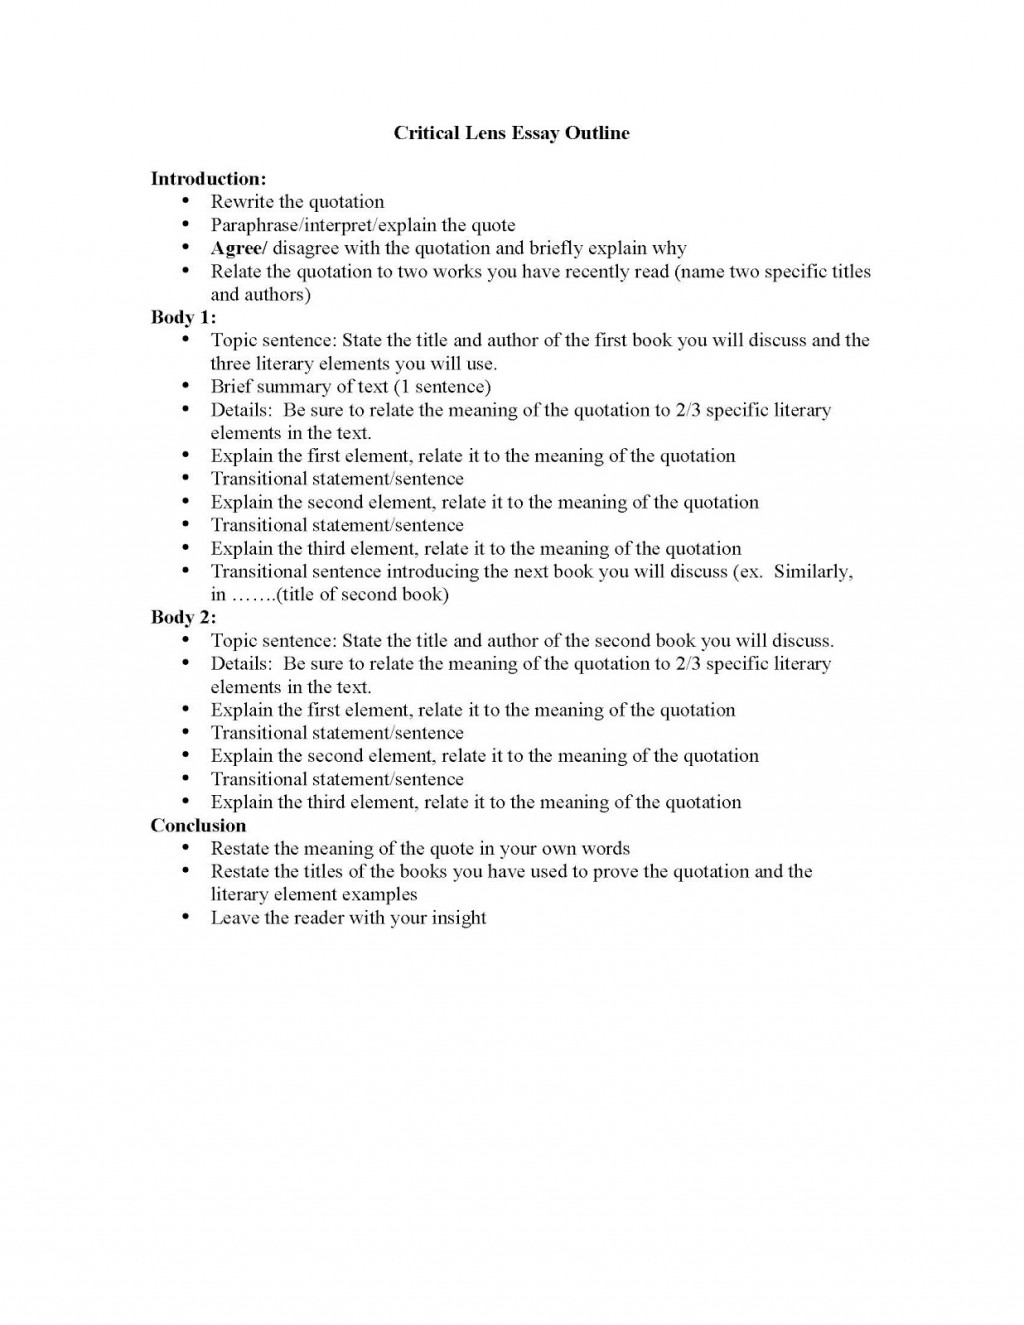 011 Outline For Argumentative Essay Example Criticallensessayoutlineandliterayelements Page 1 Archaicawful On Gun Control Sample Large